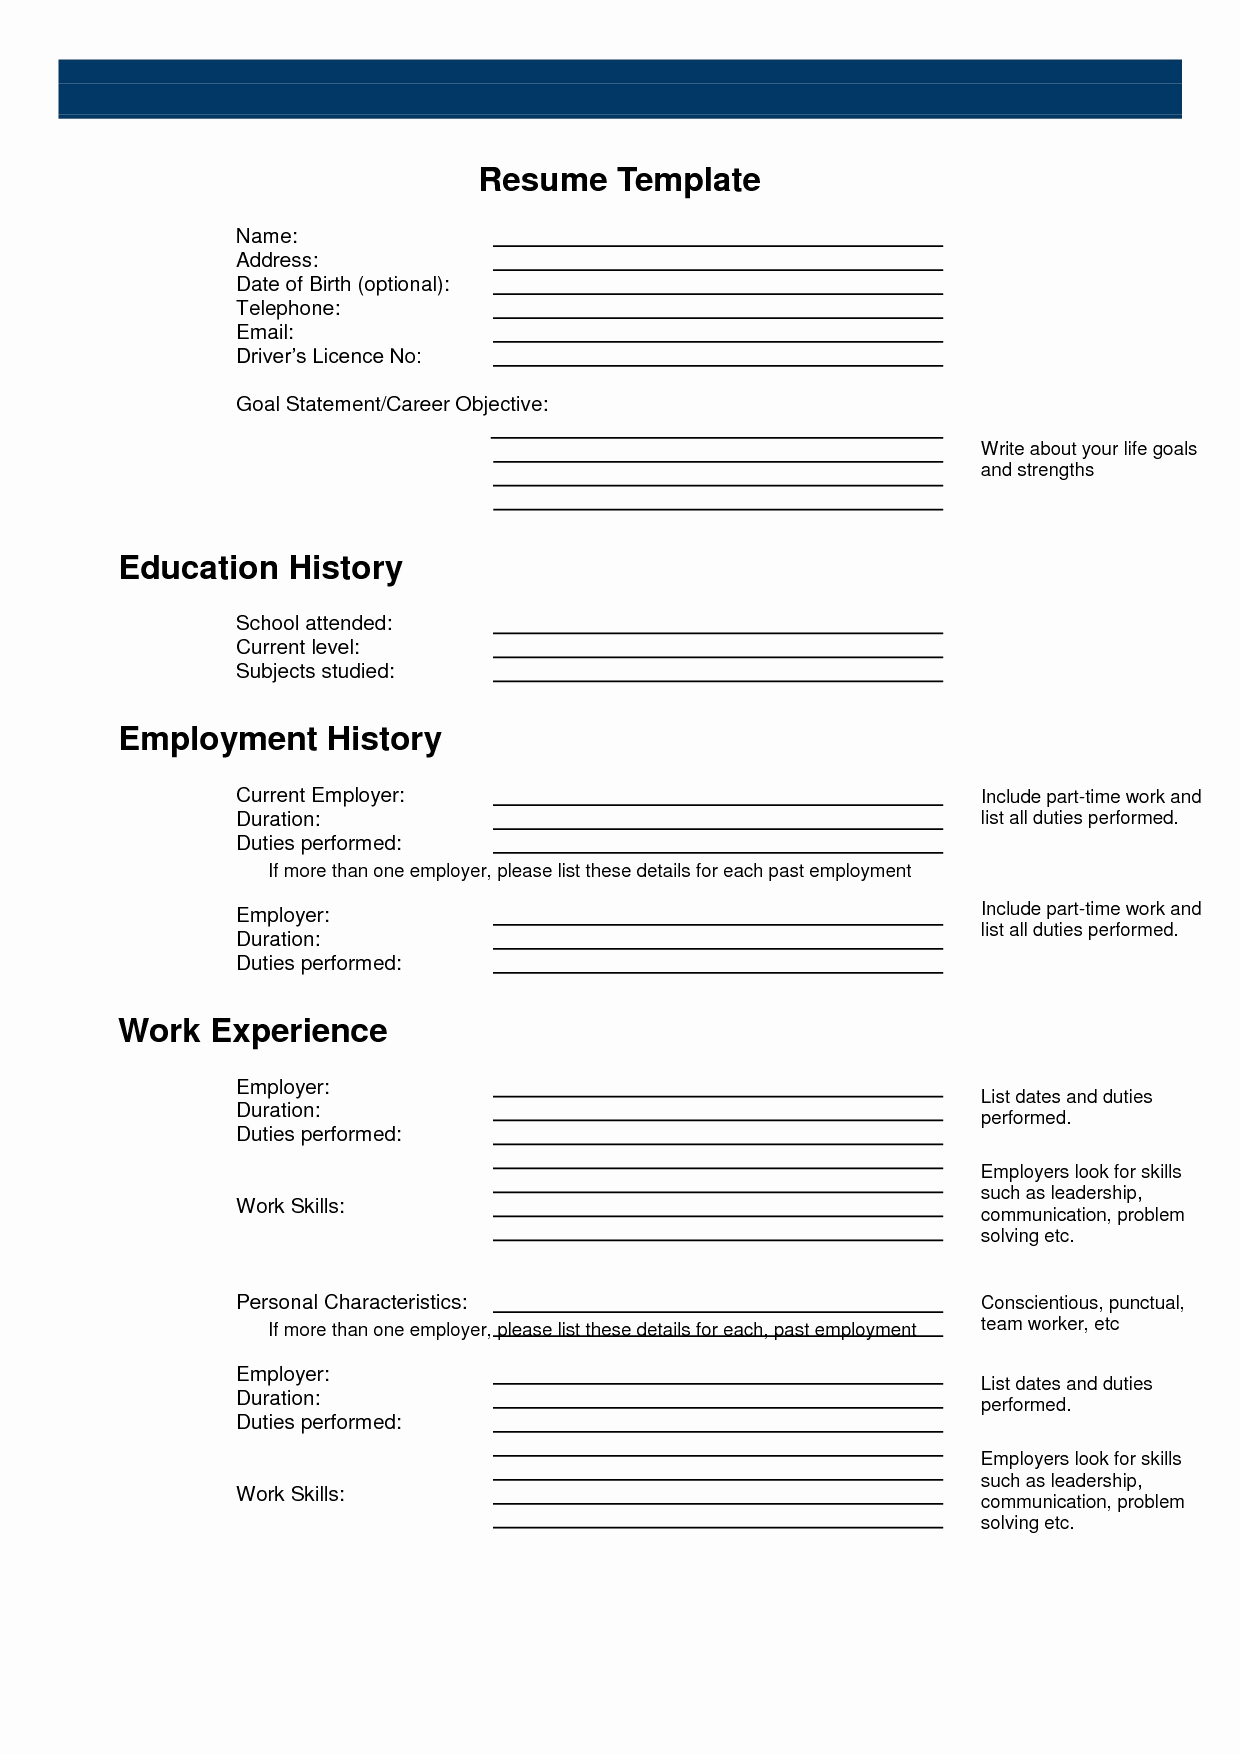 Free Resume Builder Templates